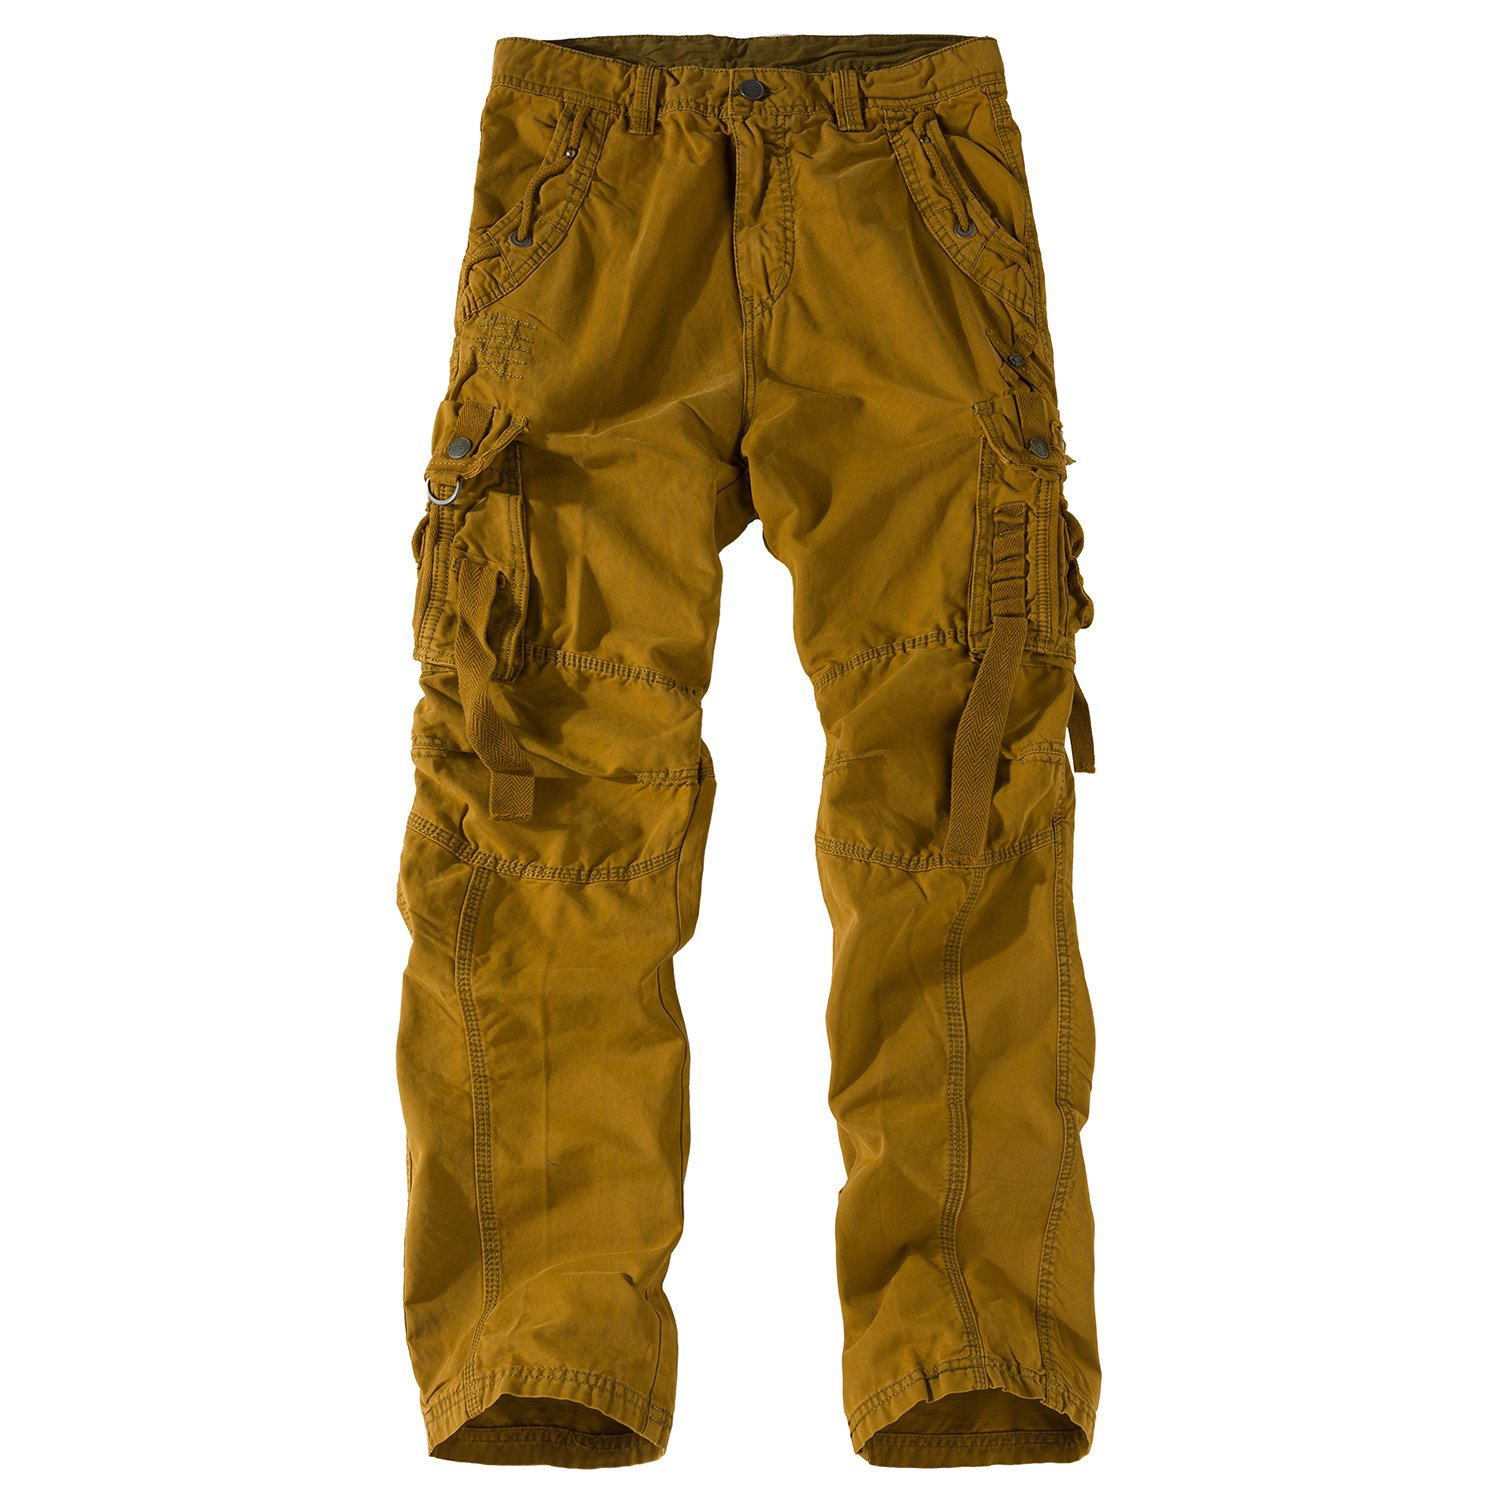 Eaglide Men's Cotton Relaxed Fit Out Door Work Tactical Cargo Pants (Earthy Yellow, 30W × 31L)